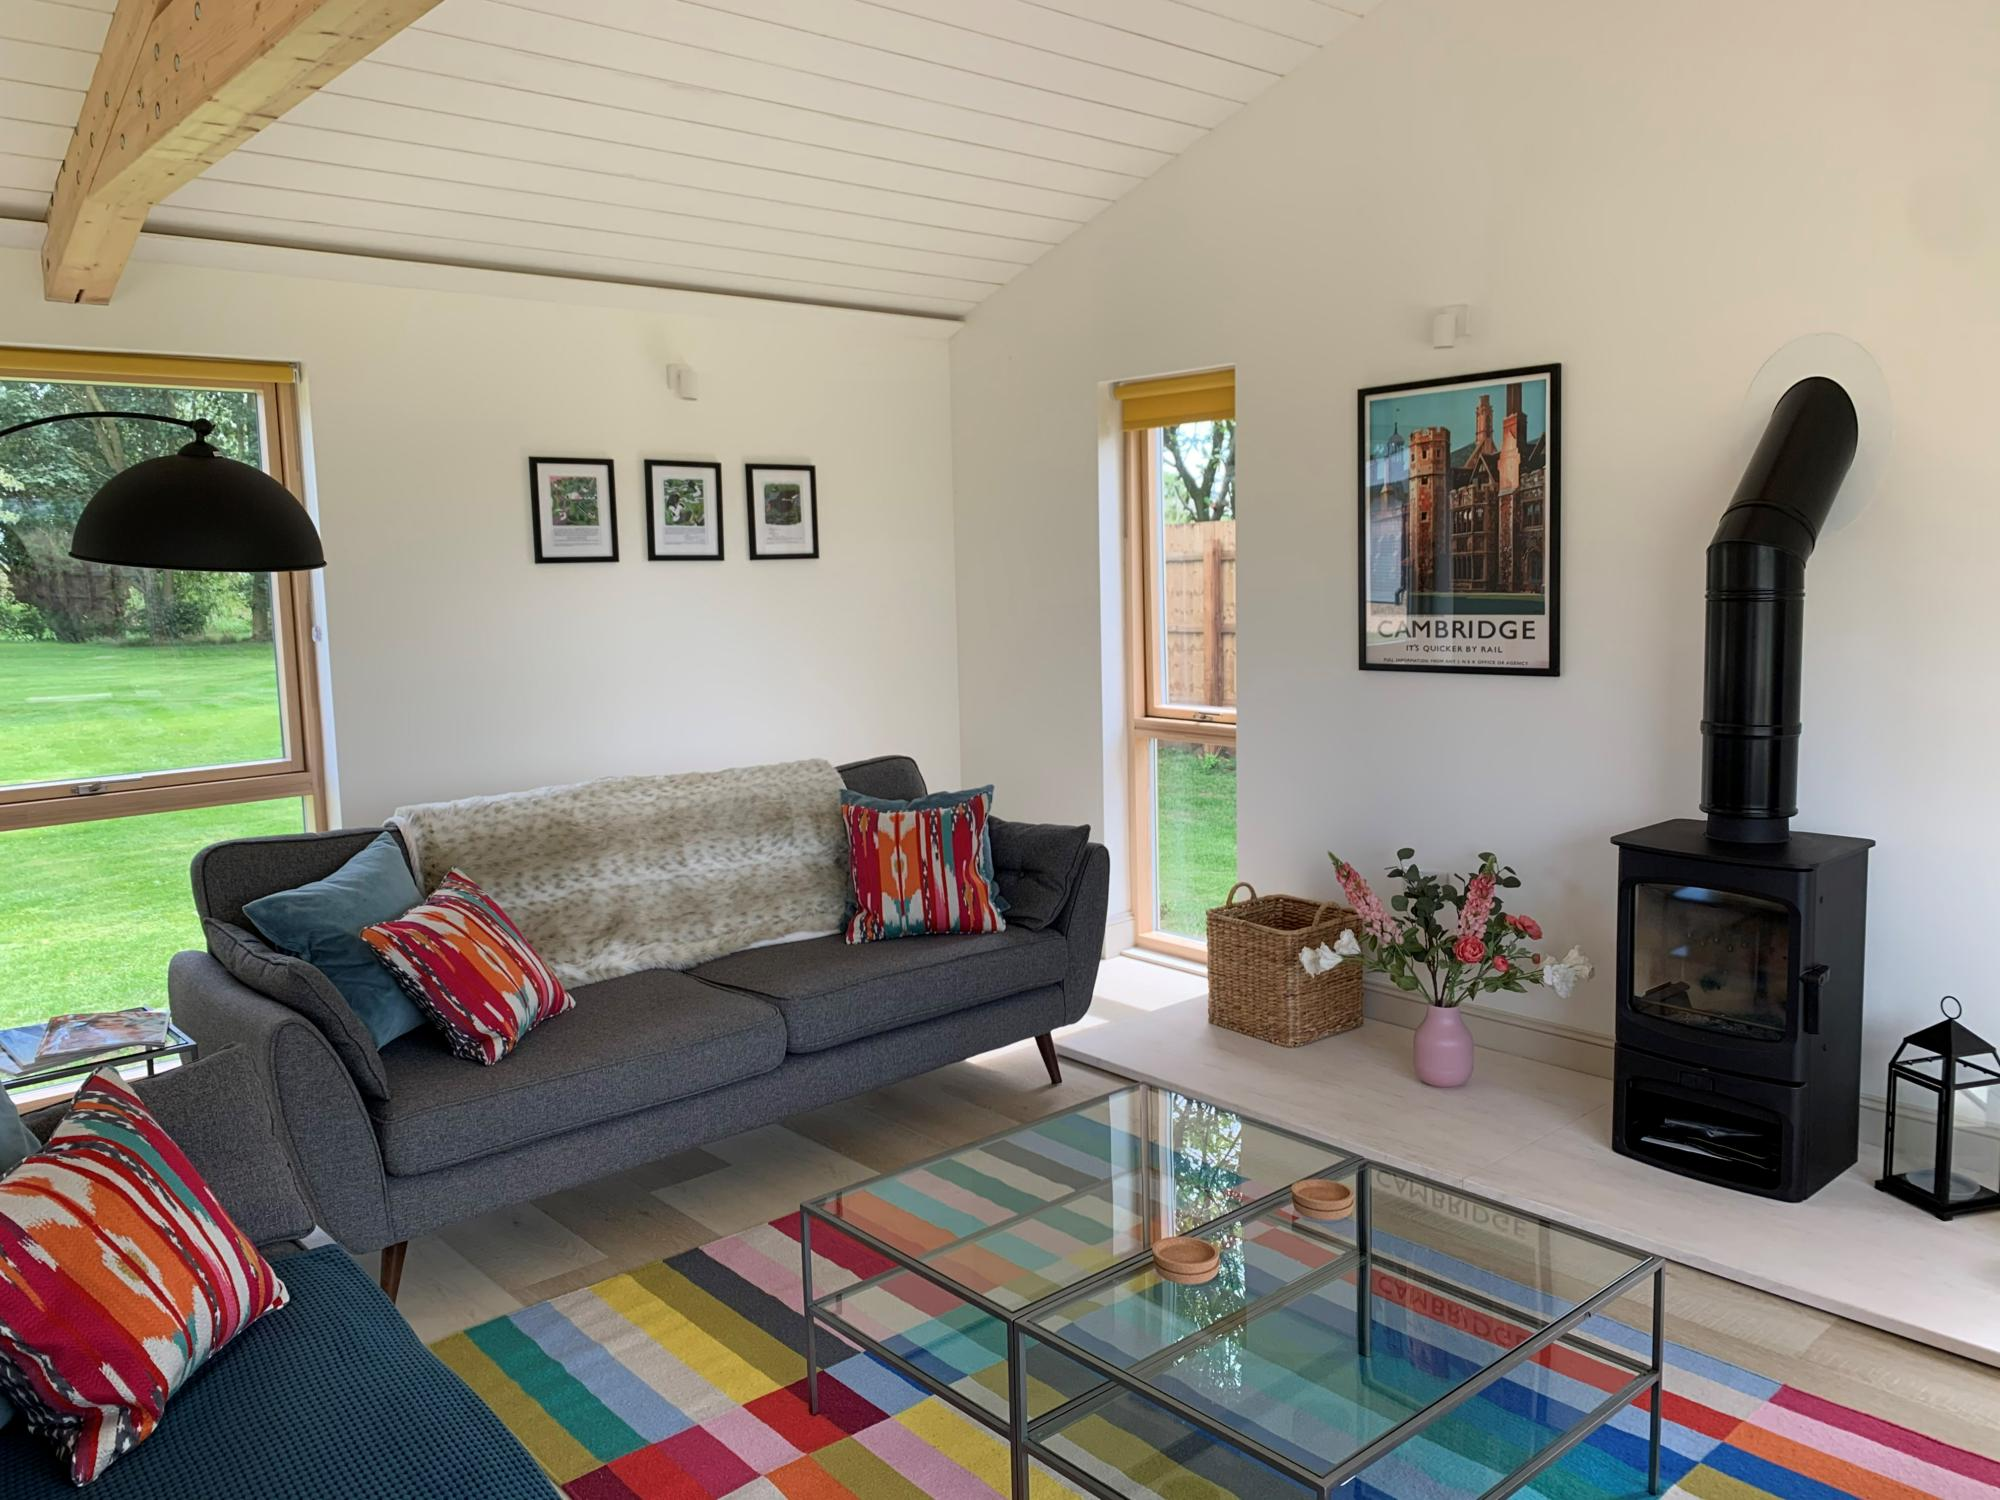 Self-Catering in East Anglia holidays at Cool Places